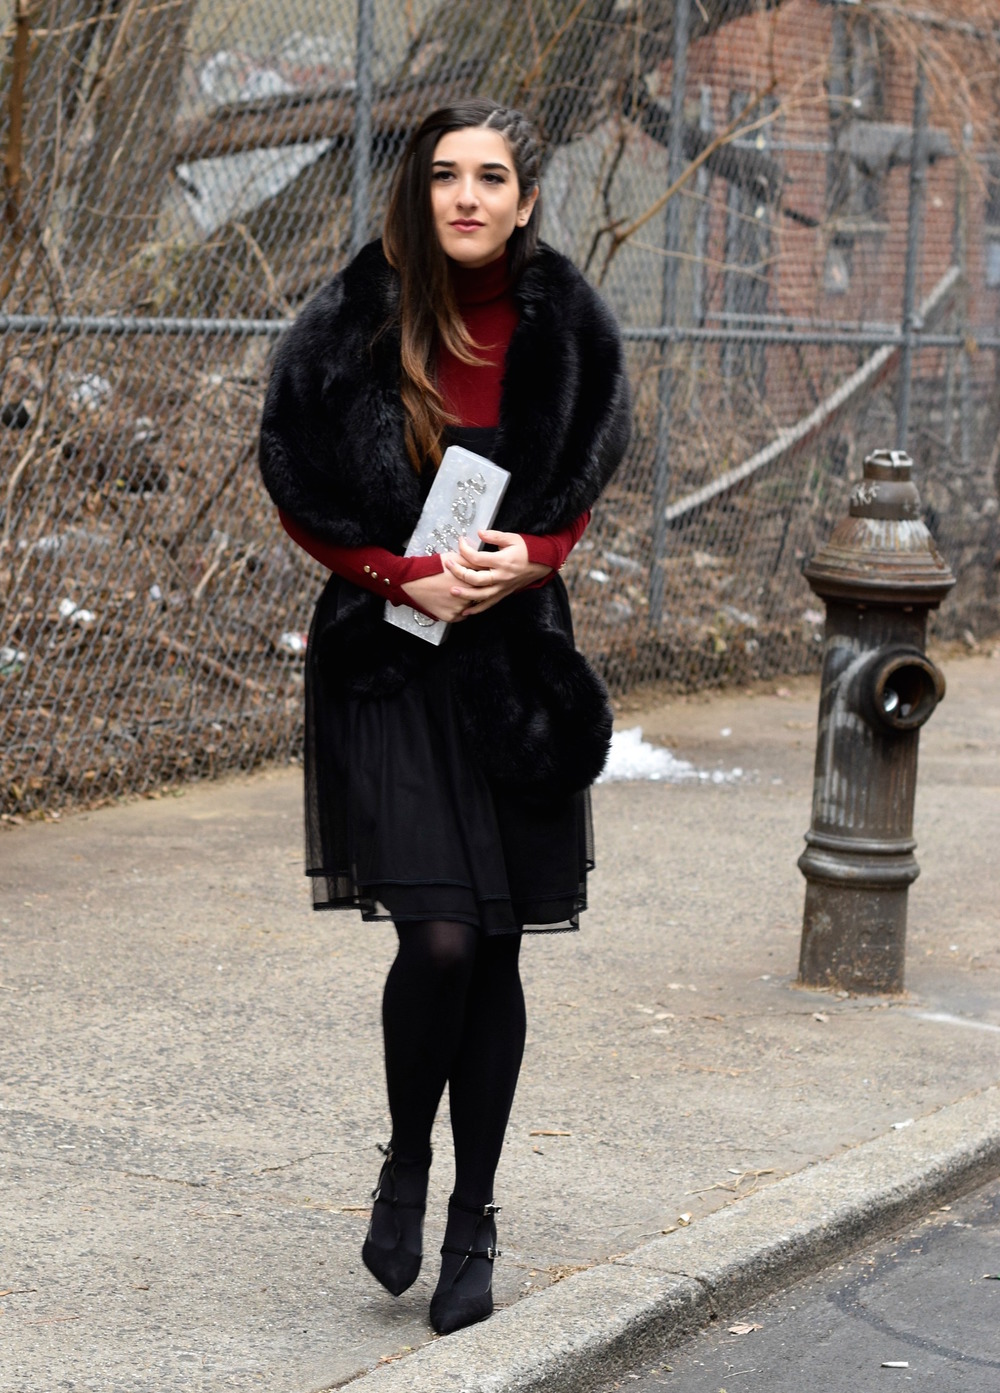 Red Turtleneck Under Strapless Dress Louboutins & Love Fashion Blog Esther Santer NYC Street Style Blogger Black Tights Name Monogrammed Clutch Hair Beautiful Inspo Model Photoshoot Zara Shoes Heels Outfit OOTD Women Girl Shopping Winter New York City.jpg